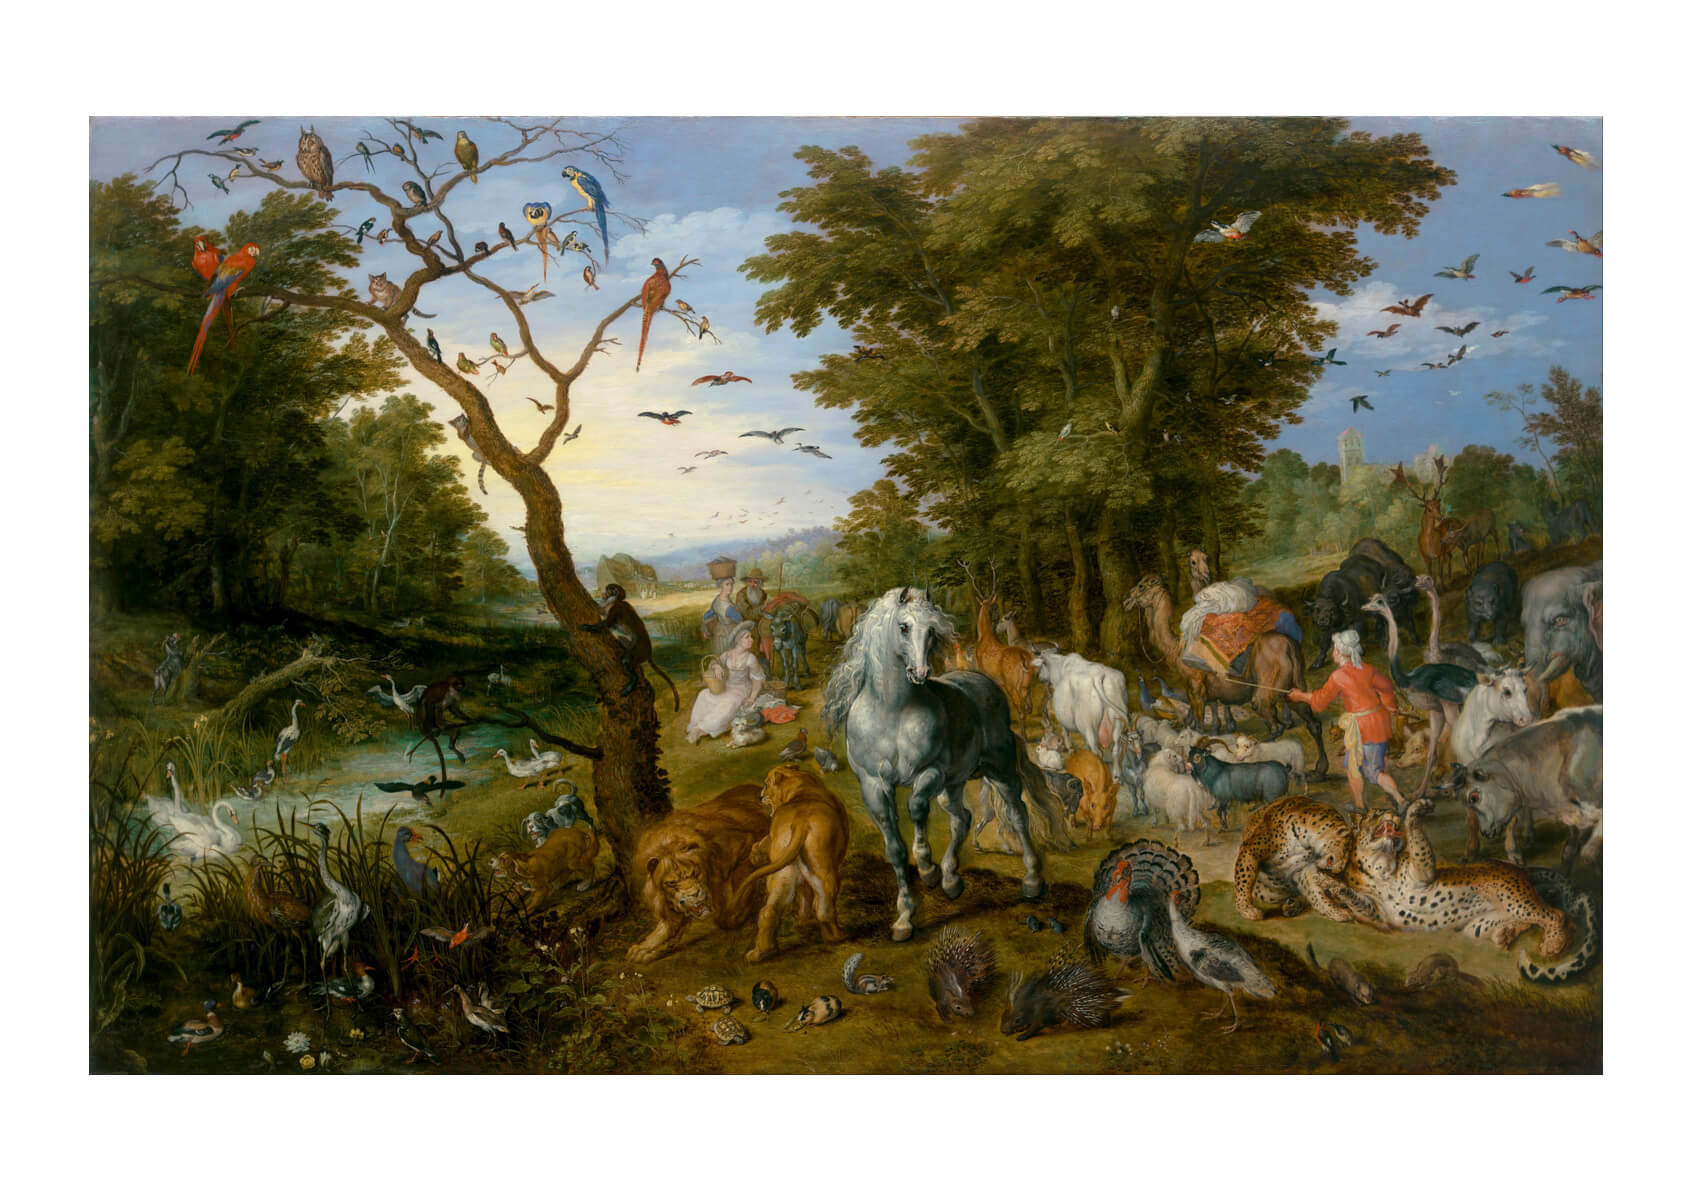 Jan Brueghel the Elder The Entry of the Animals into Noah's Ark